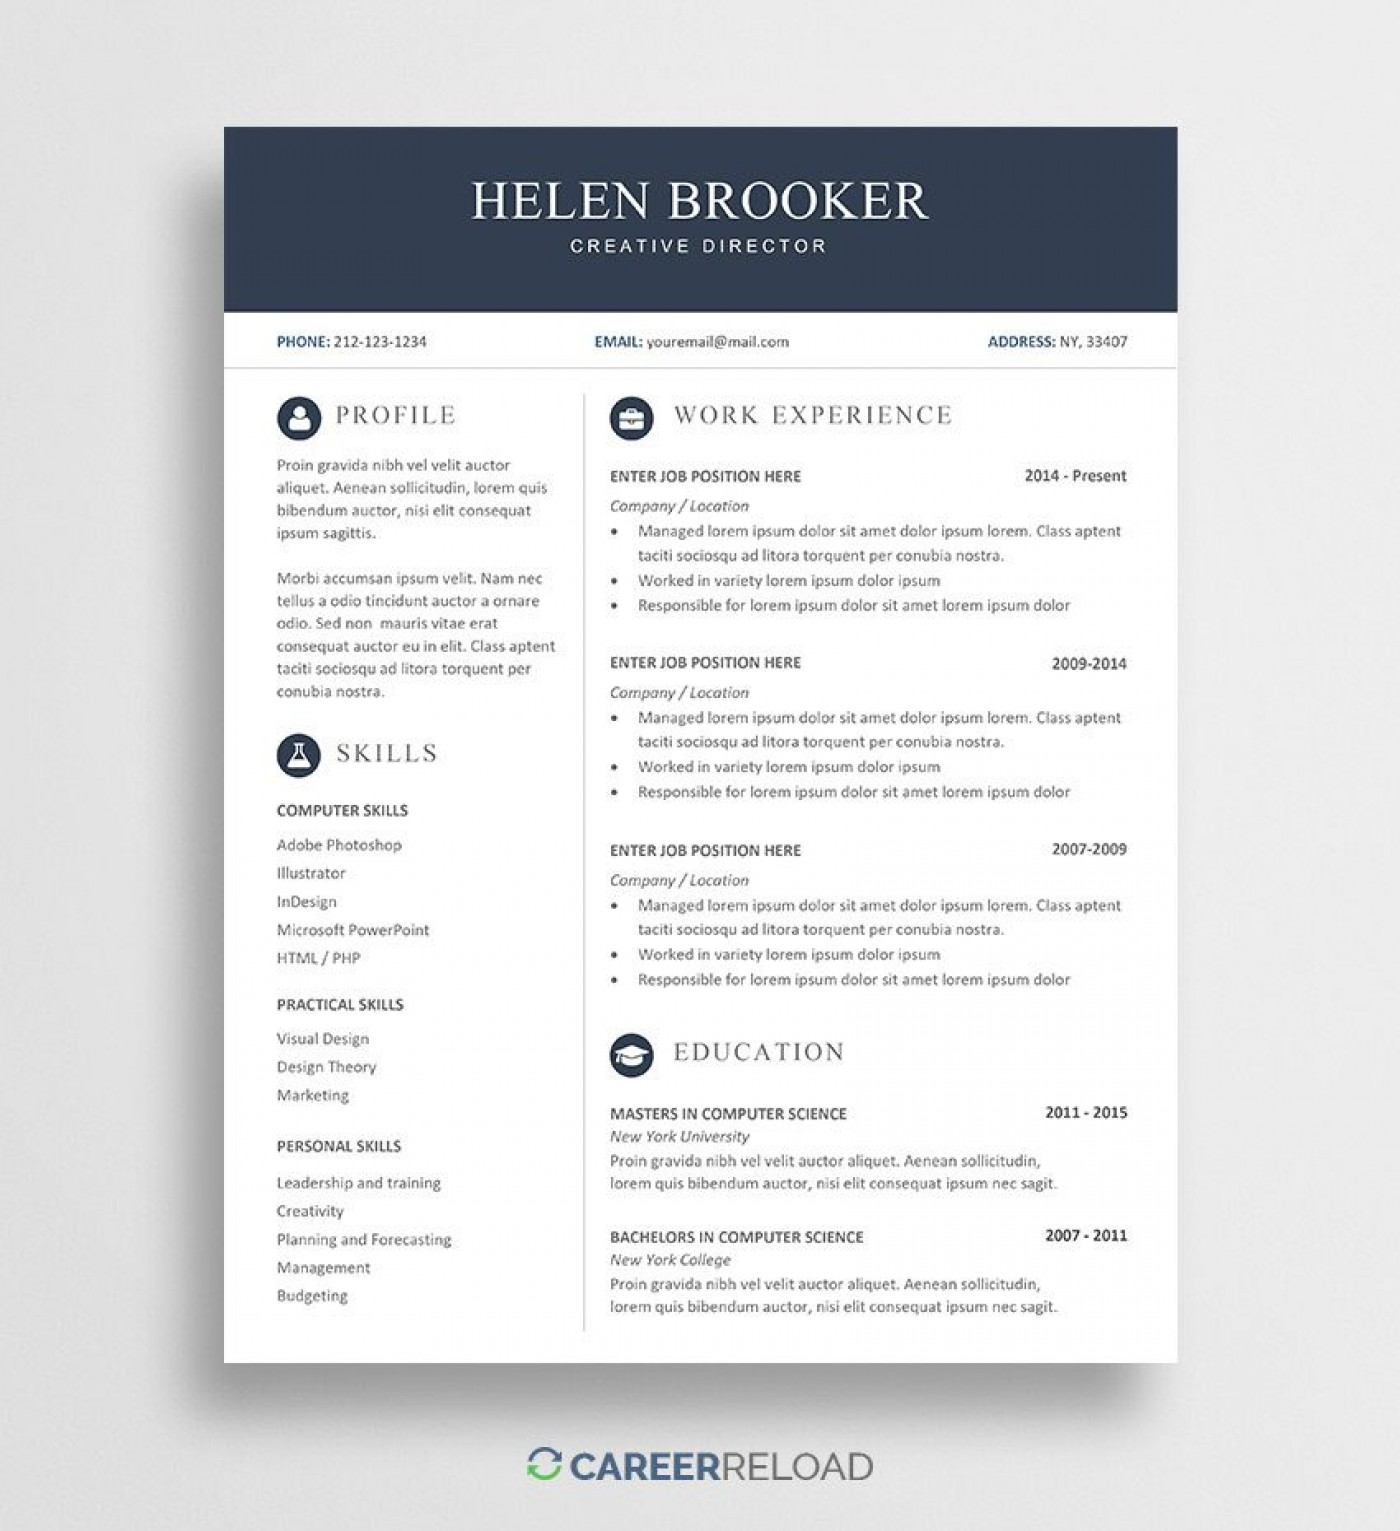 005 Awesome Word Resume Template Free Image  Microsoft 2010 Download 2019 Modern1400